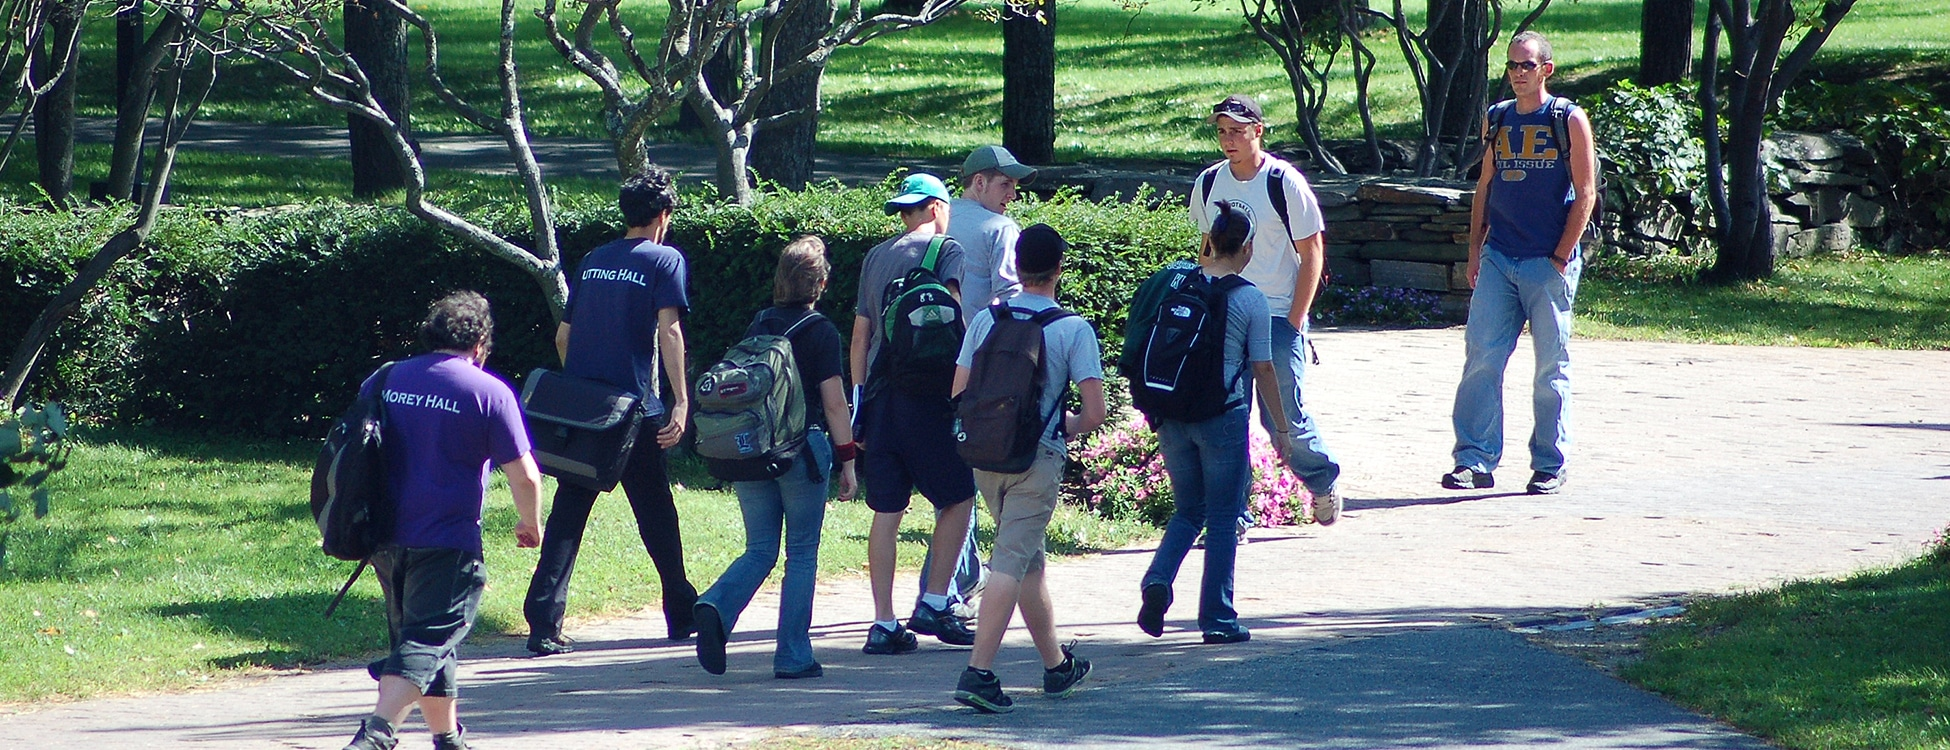 Students walk outside on walkway, sunshine, Randolph Center campus